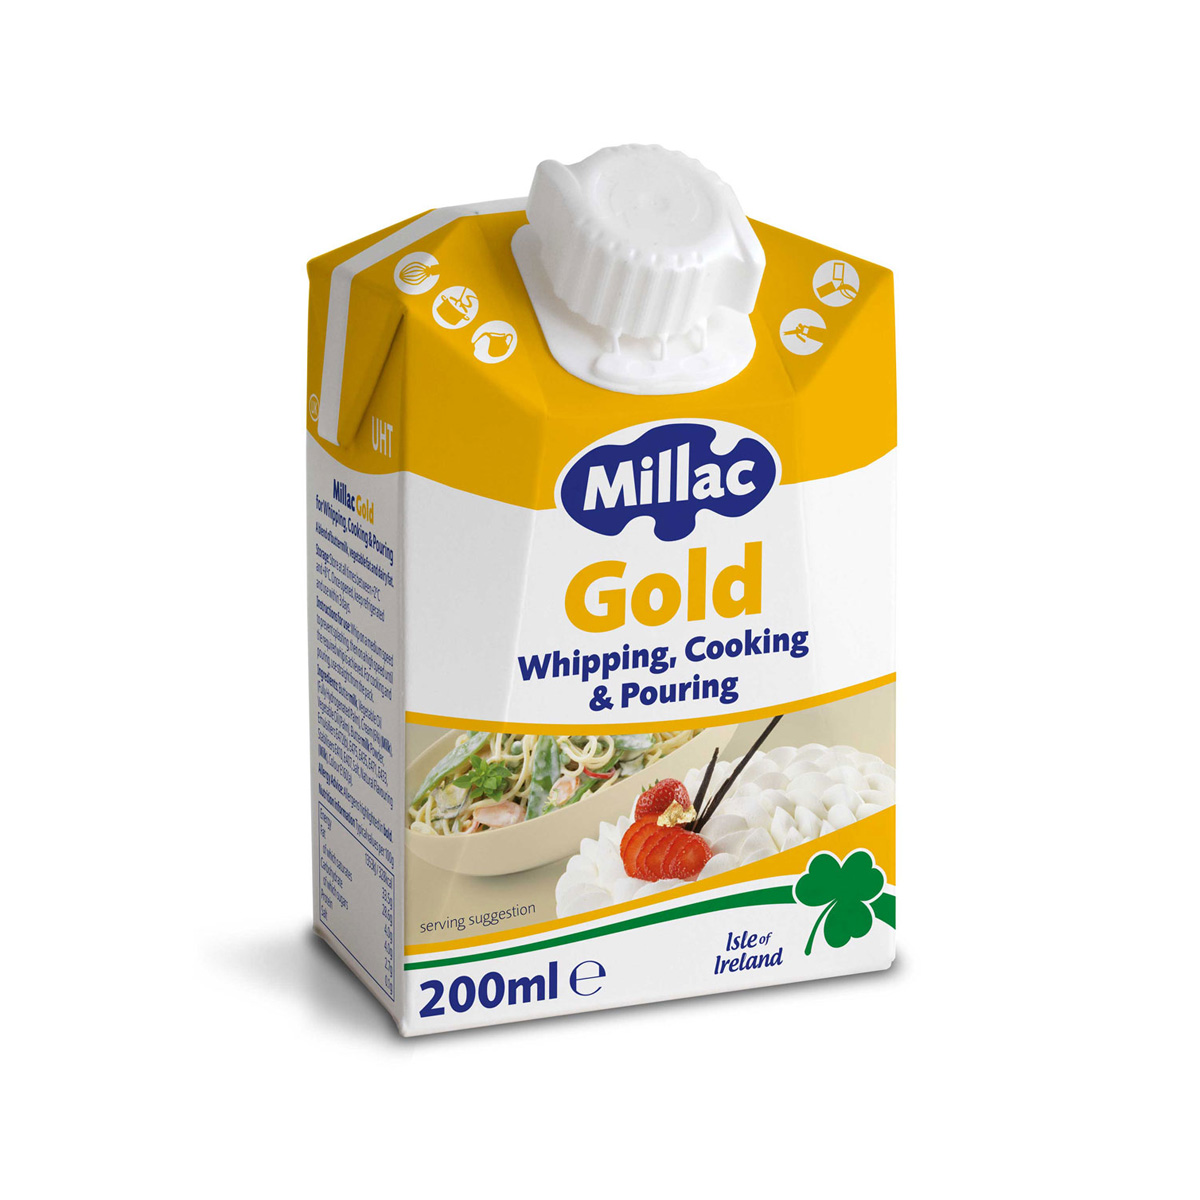 Millac Gold